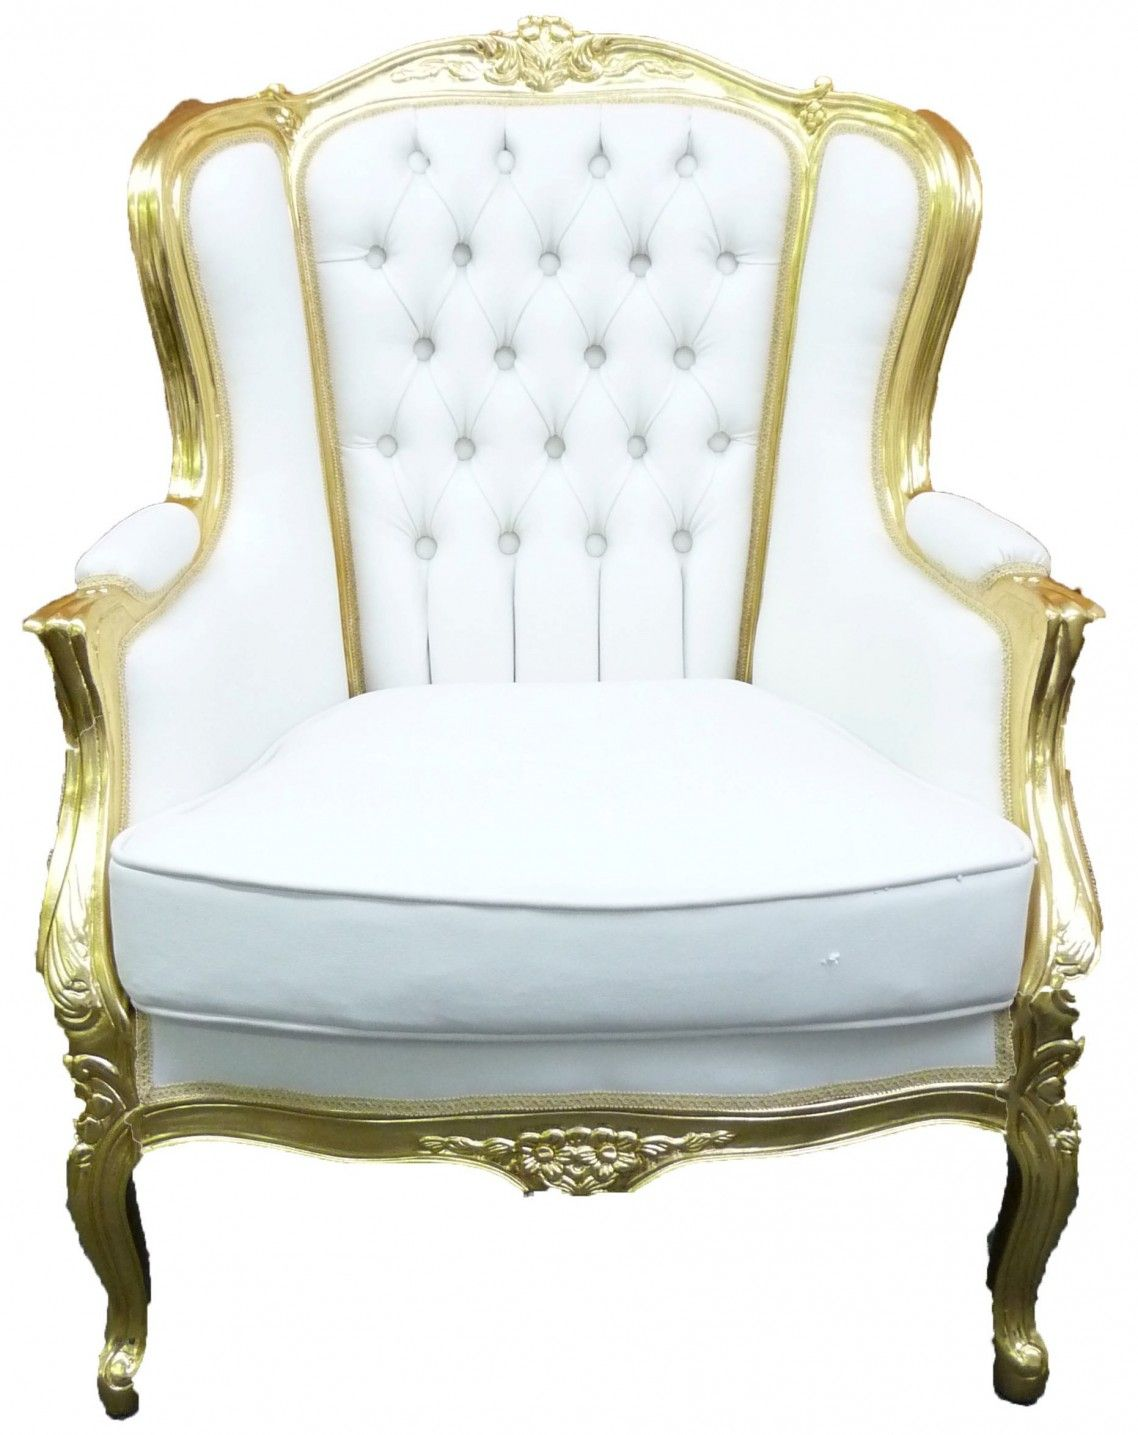 Victorian style chair - Victorian Style Tufted White Leather Wingback Chairs With Carved Gold Wooden Based Frame Adorable White